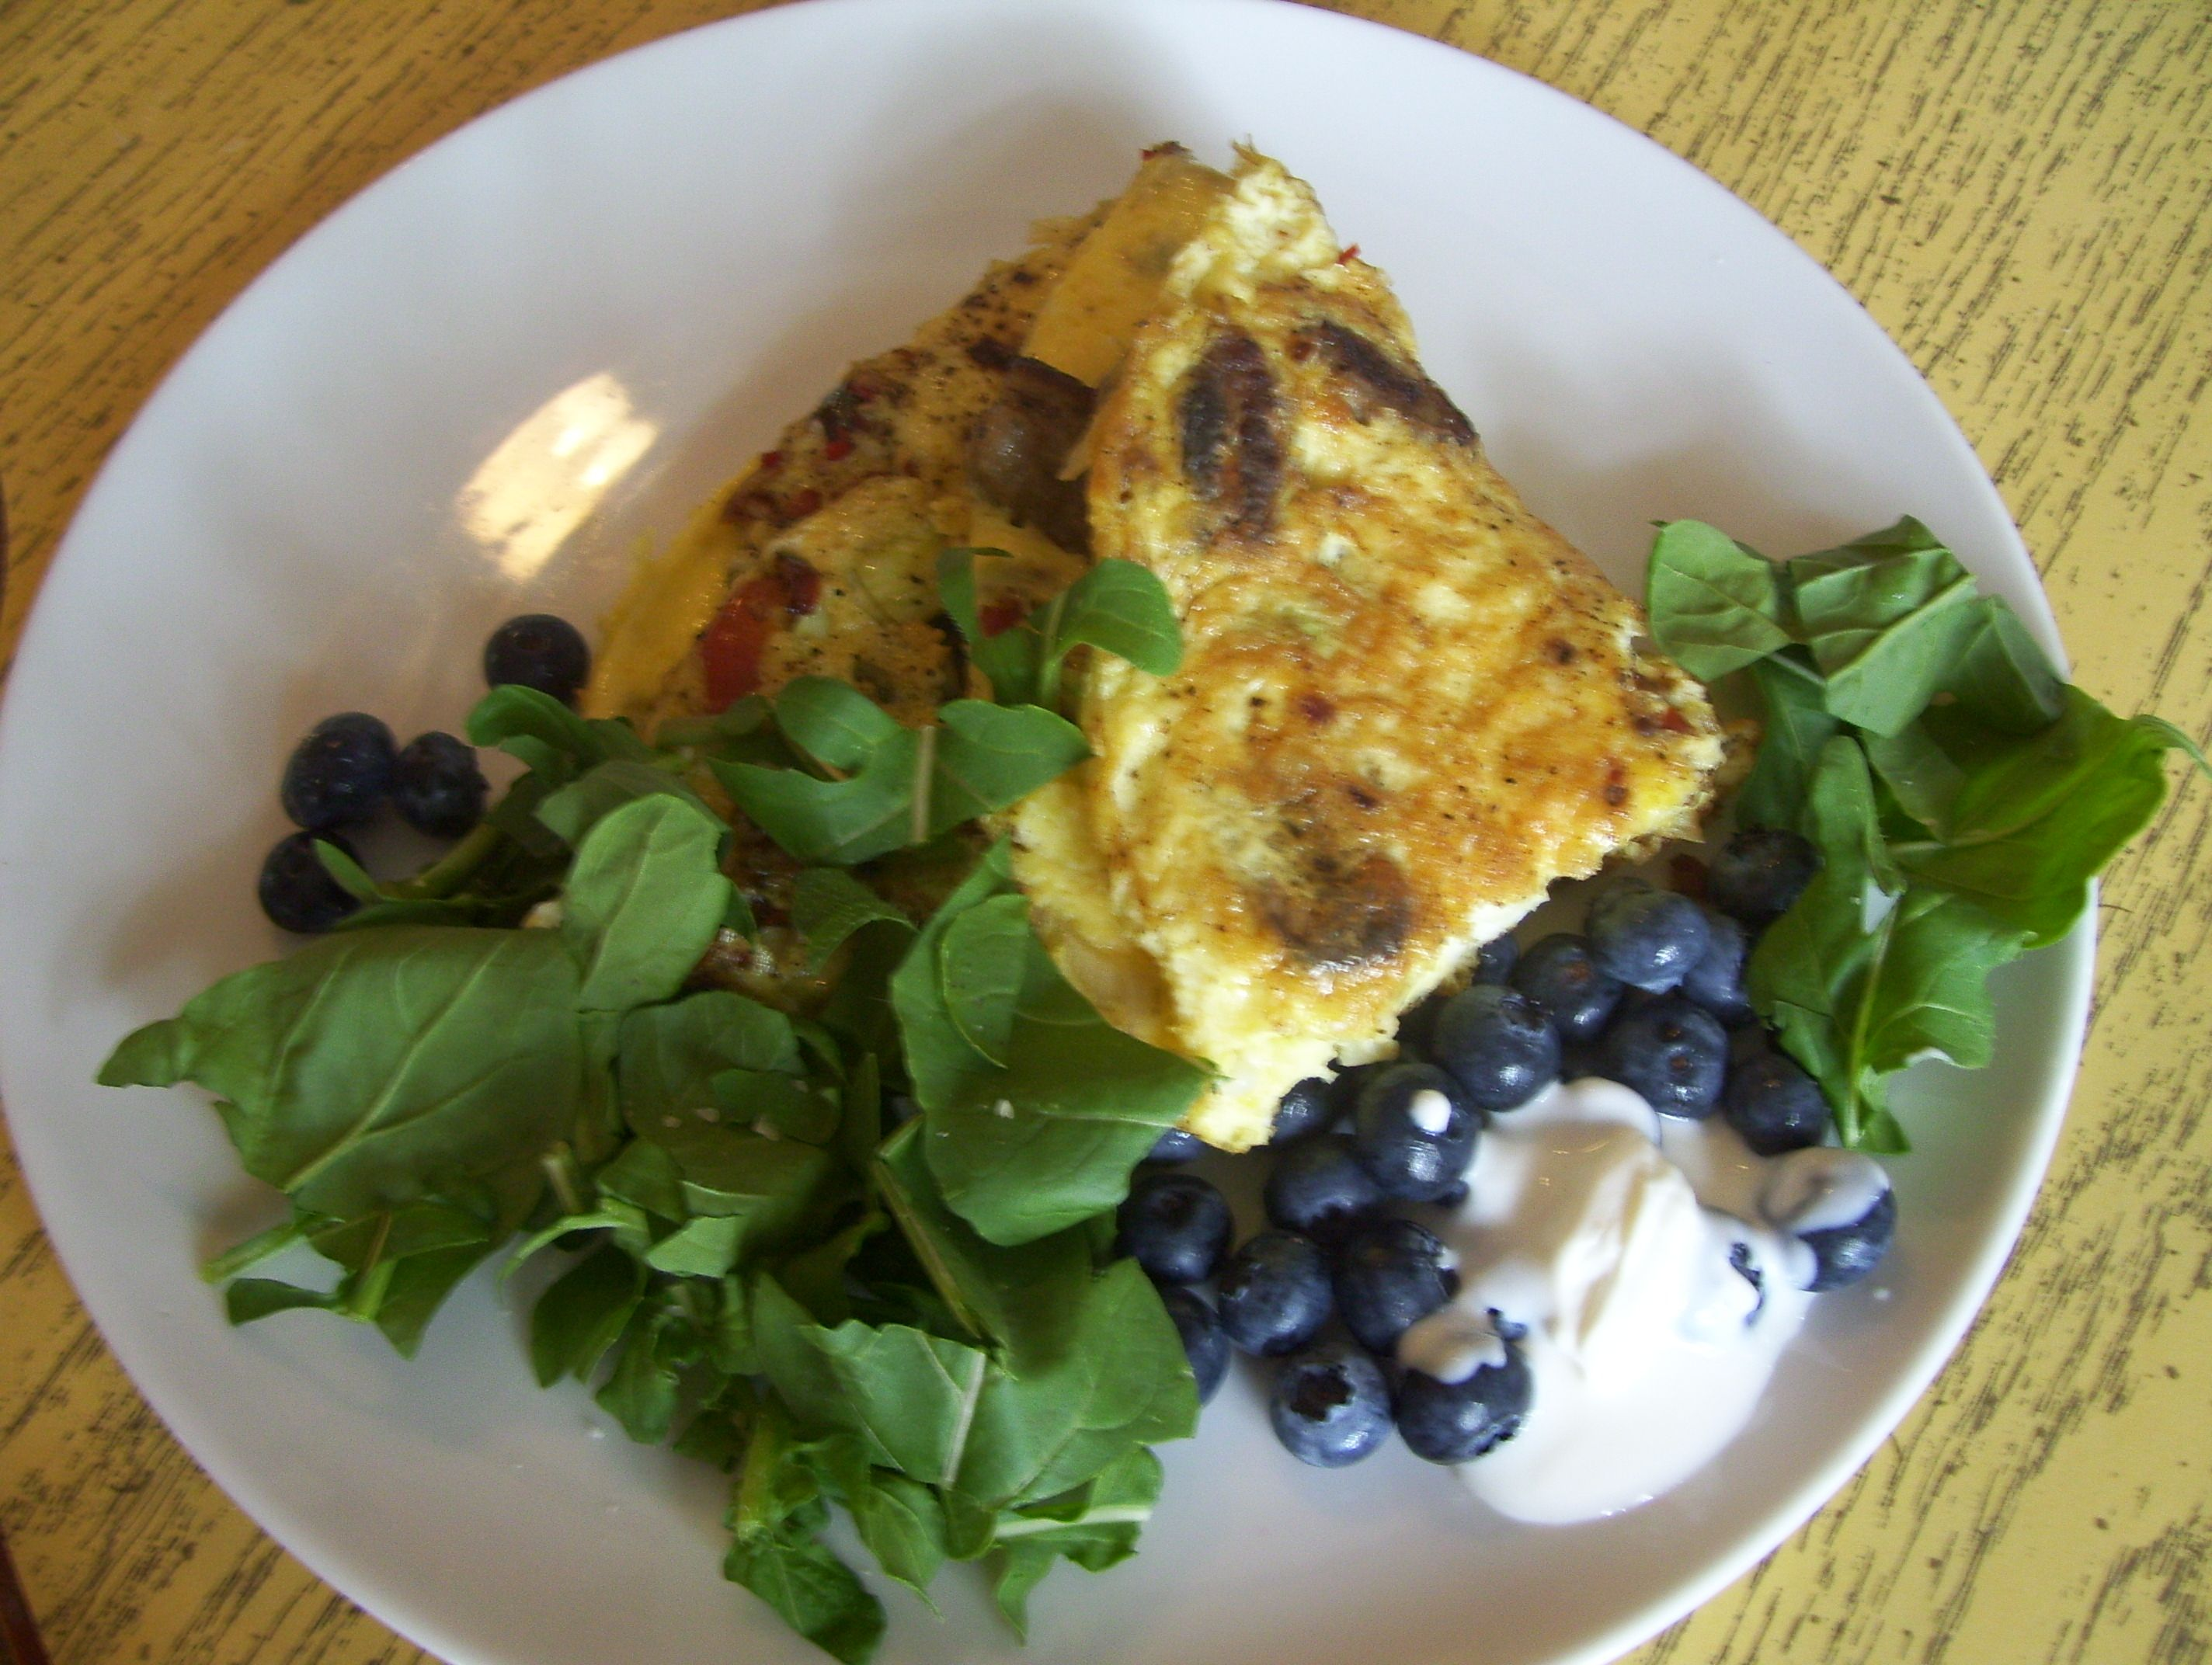 Folded frittata with hot peppers, sweet peppers, baby okra, baby squash, garlic, and parmesan... with fresh arugula, blueberries and home made yogurt!